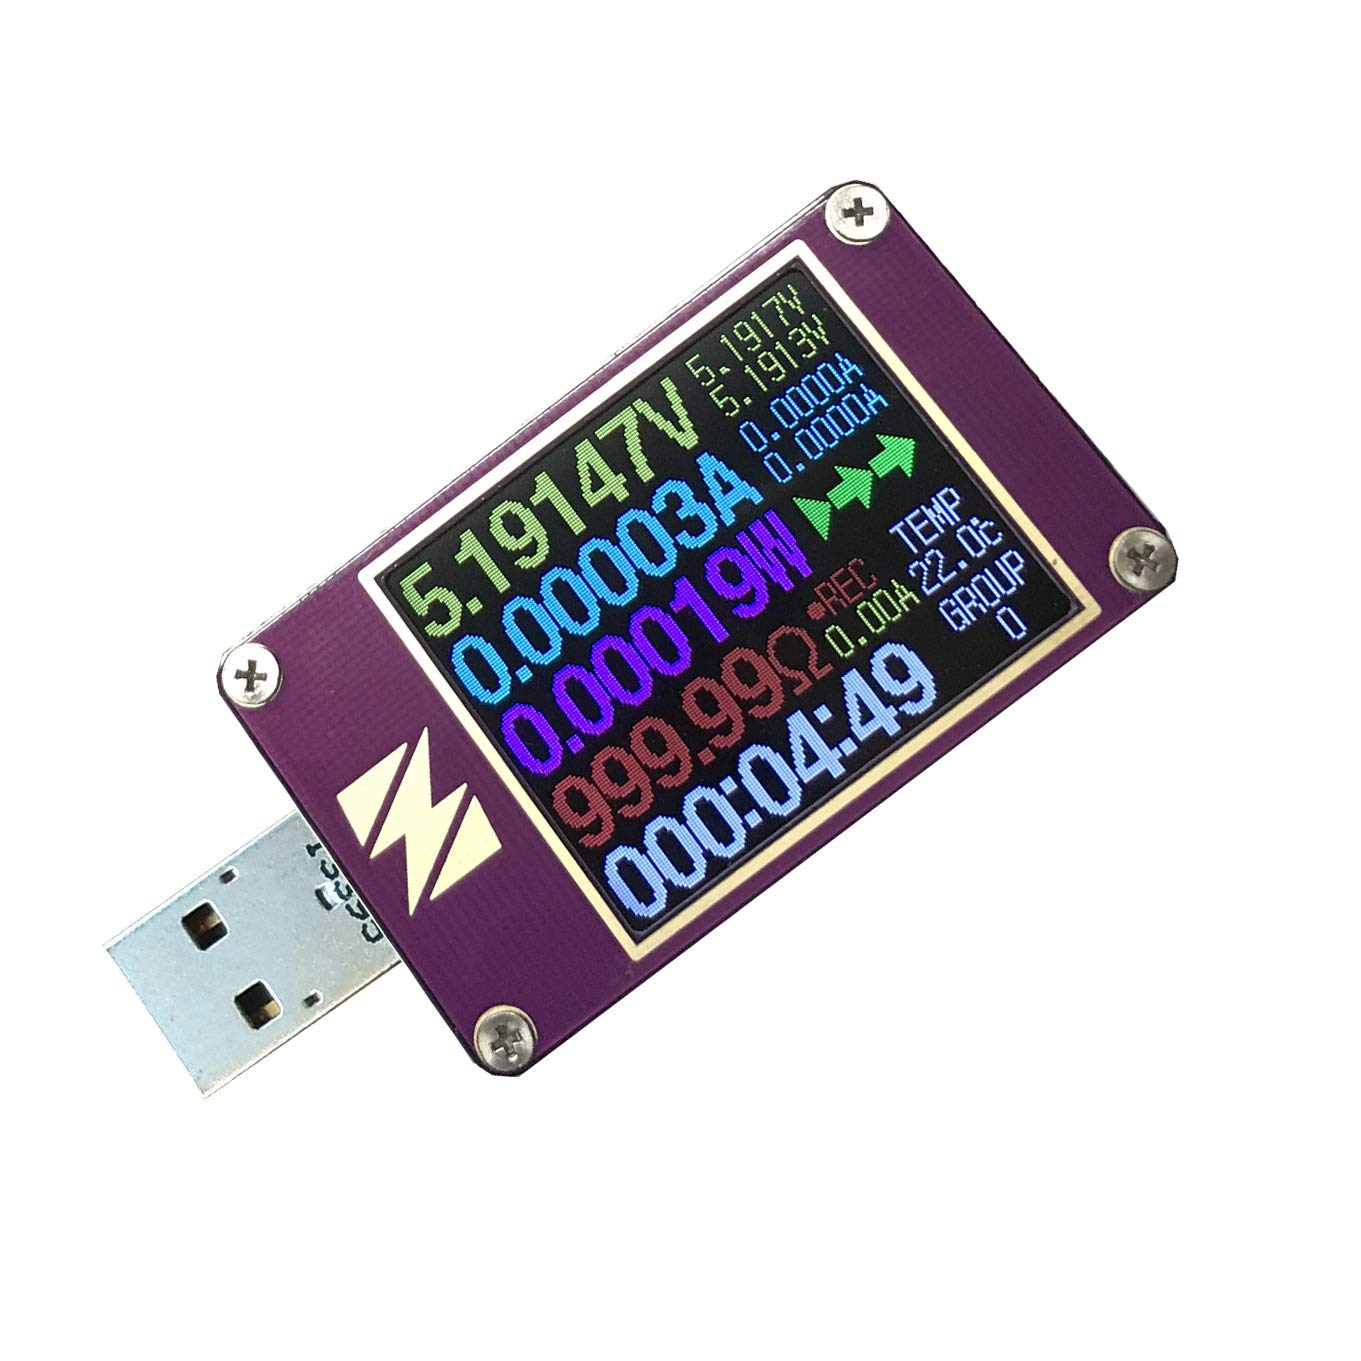 KAAYEE YZXStudio ZY1280 USB Power Meter Tester Digital Multimeter USB Load Current Tester Voltage Detector DC 24.0000V 5.0000A Charger Cables Resistance Test PD 2.0/3.0 QC 2.0/3.0/4.0 or pps Trigge